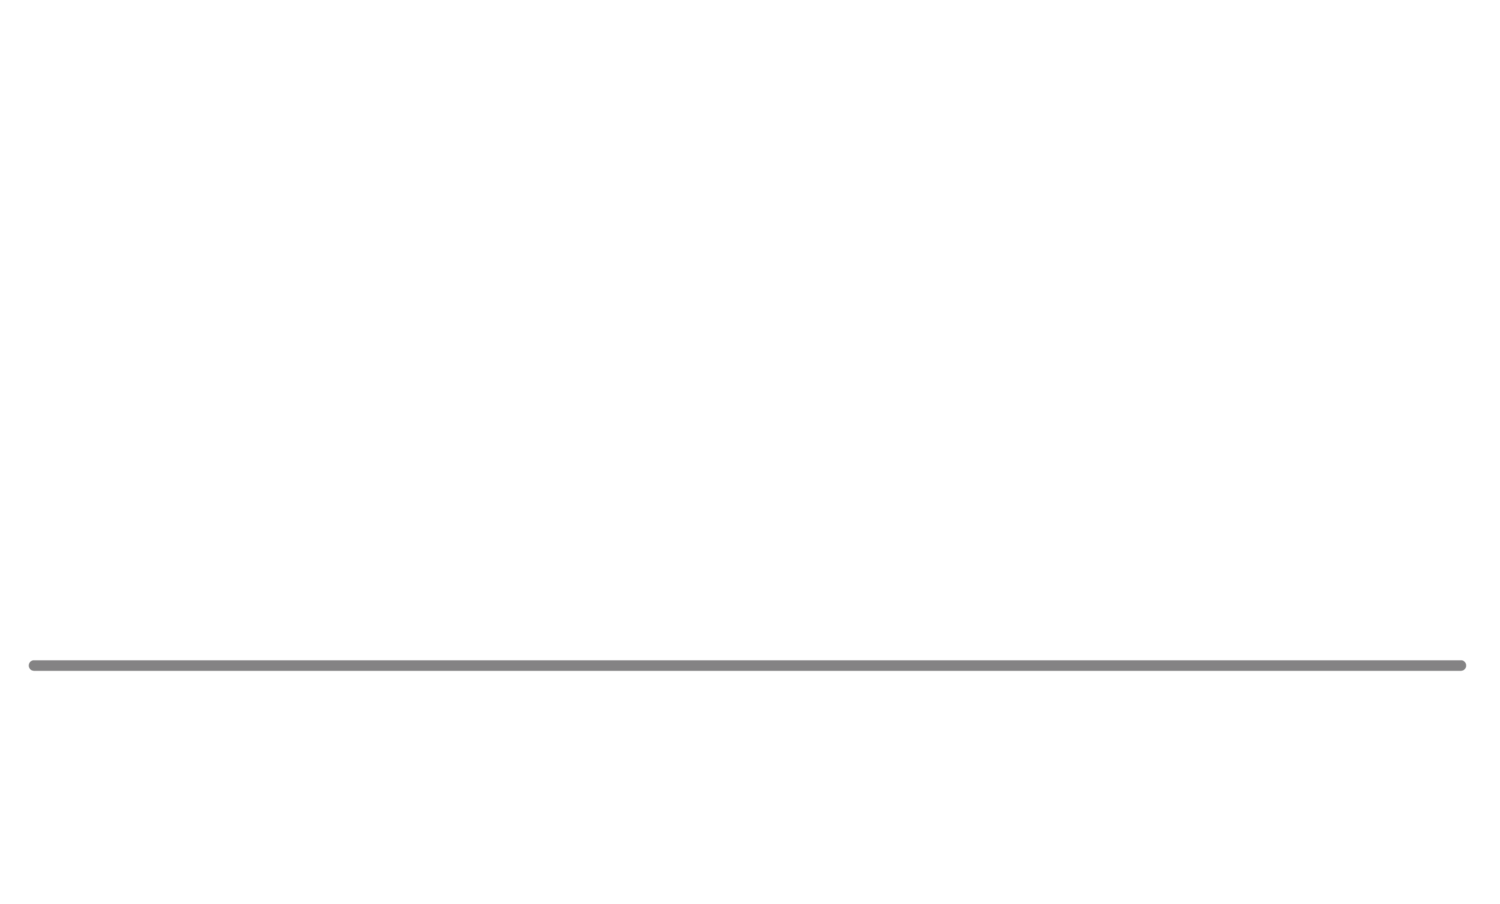 The Biglieri Group Ltd.